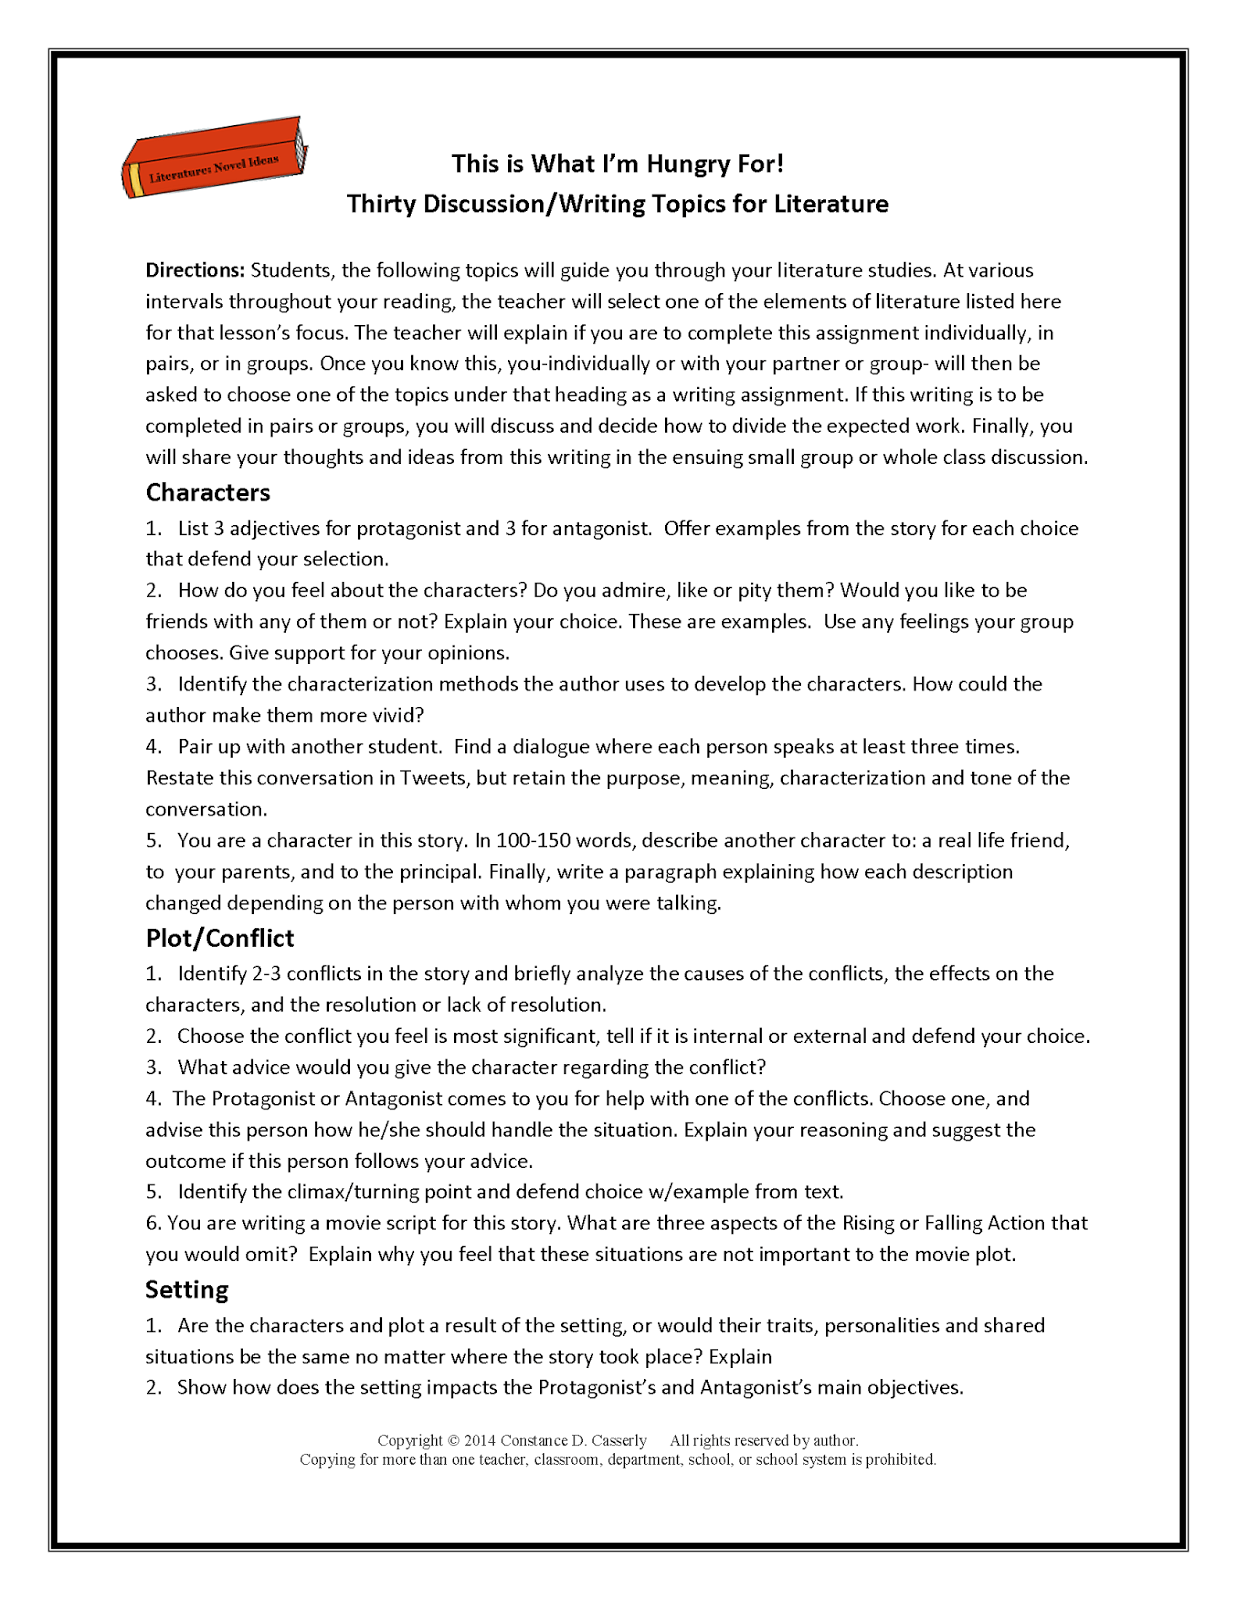 Reading Comprehension Worksheet Middle School